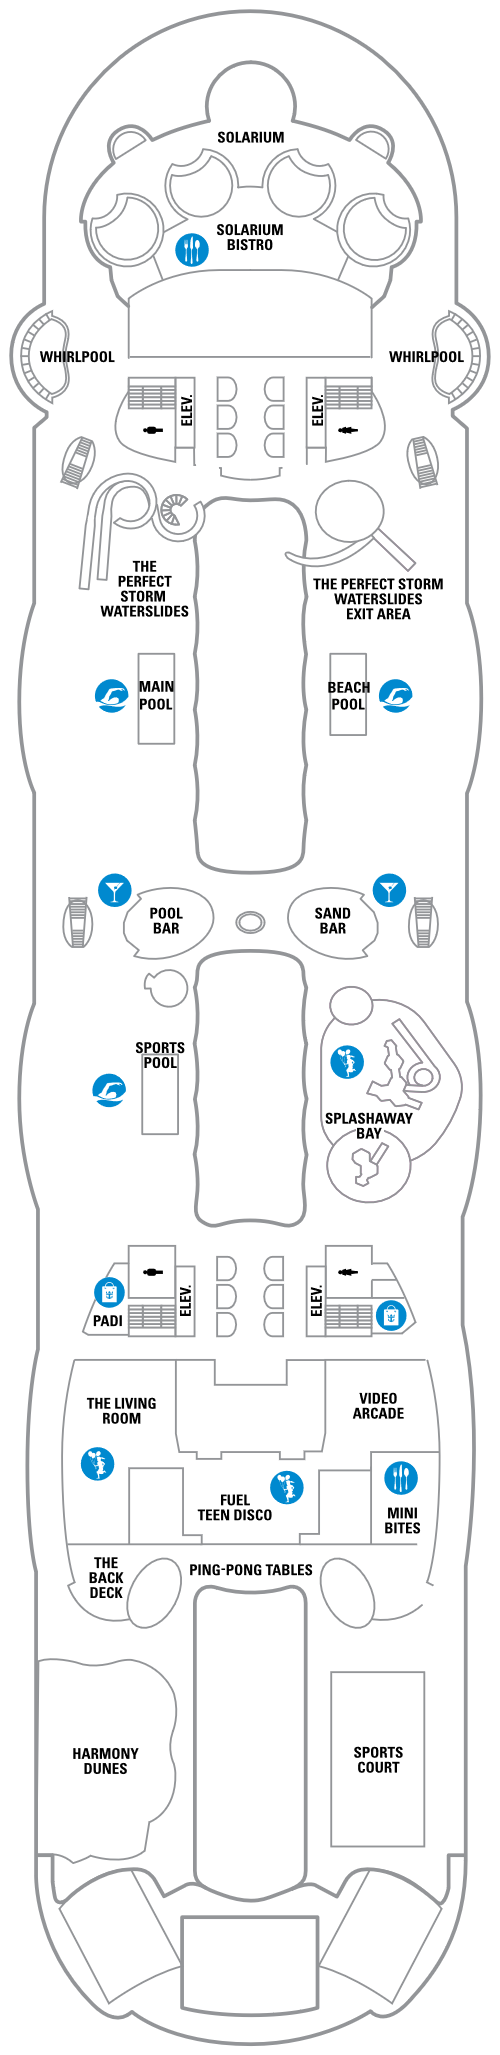 Harmony of the Seas Deck 15 layout